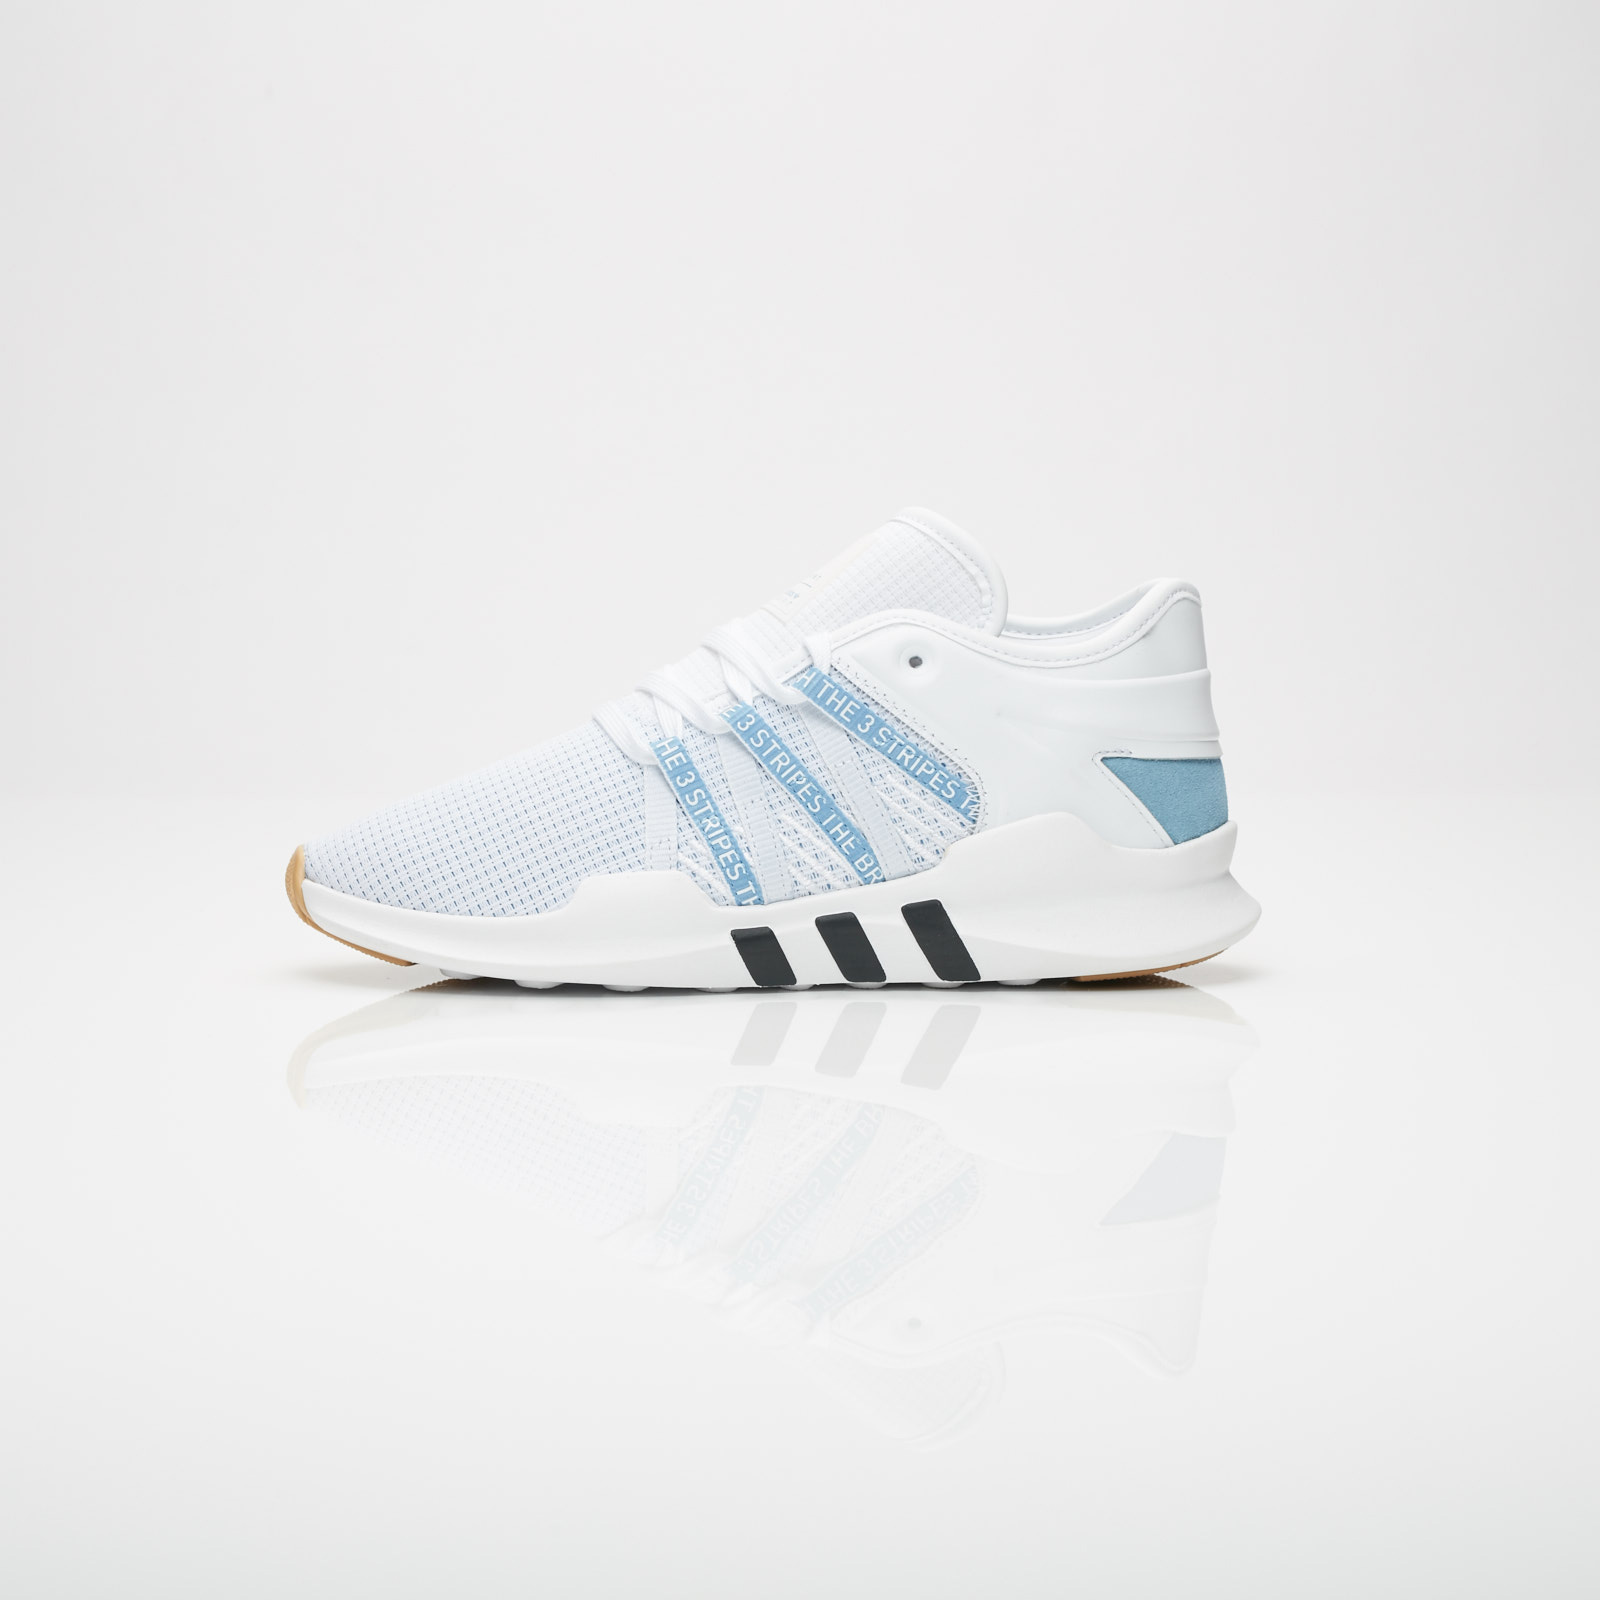 5bb3ae1af31 adidas EQT Racing ADV W - Cq2155 - Sneakersnstuff | sneakers ...